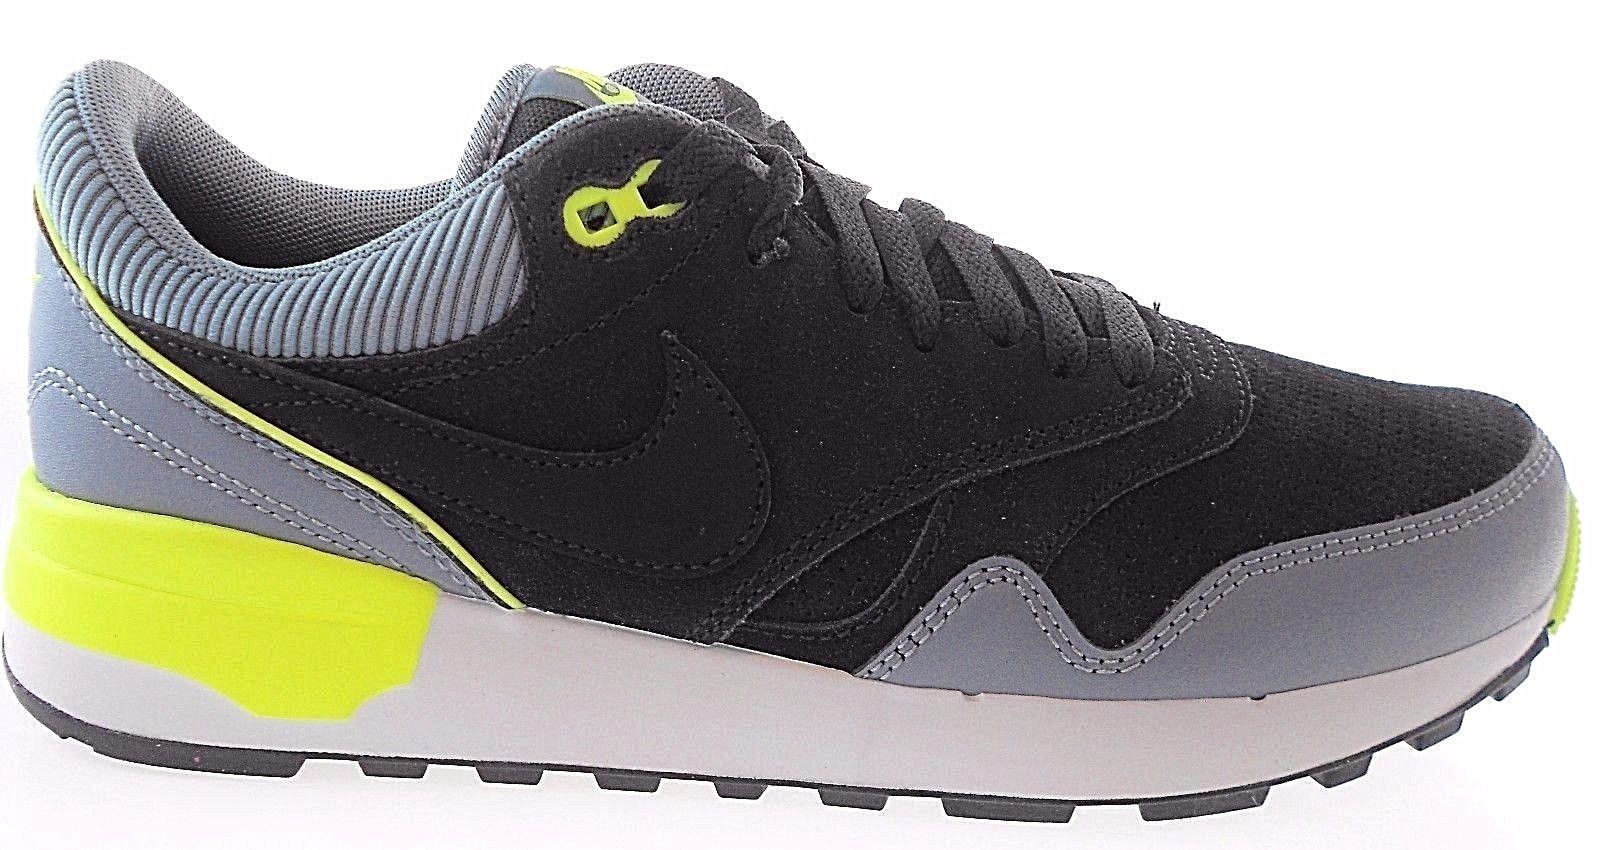 Primary image for NIKE AIR ODYSSEY LEATHER MEN'S BLACK/GREY SNEAKERS, #684773-003 $126